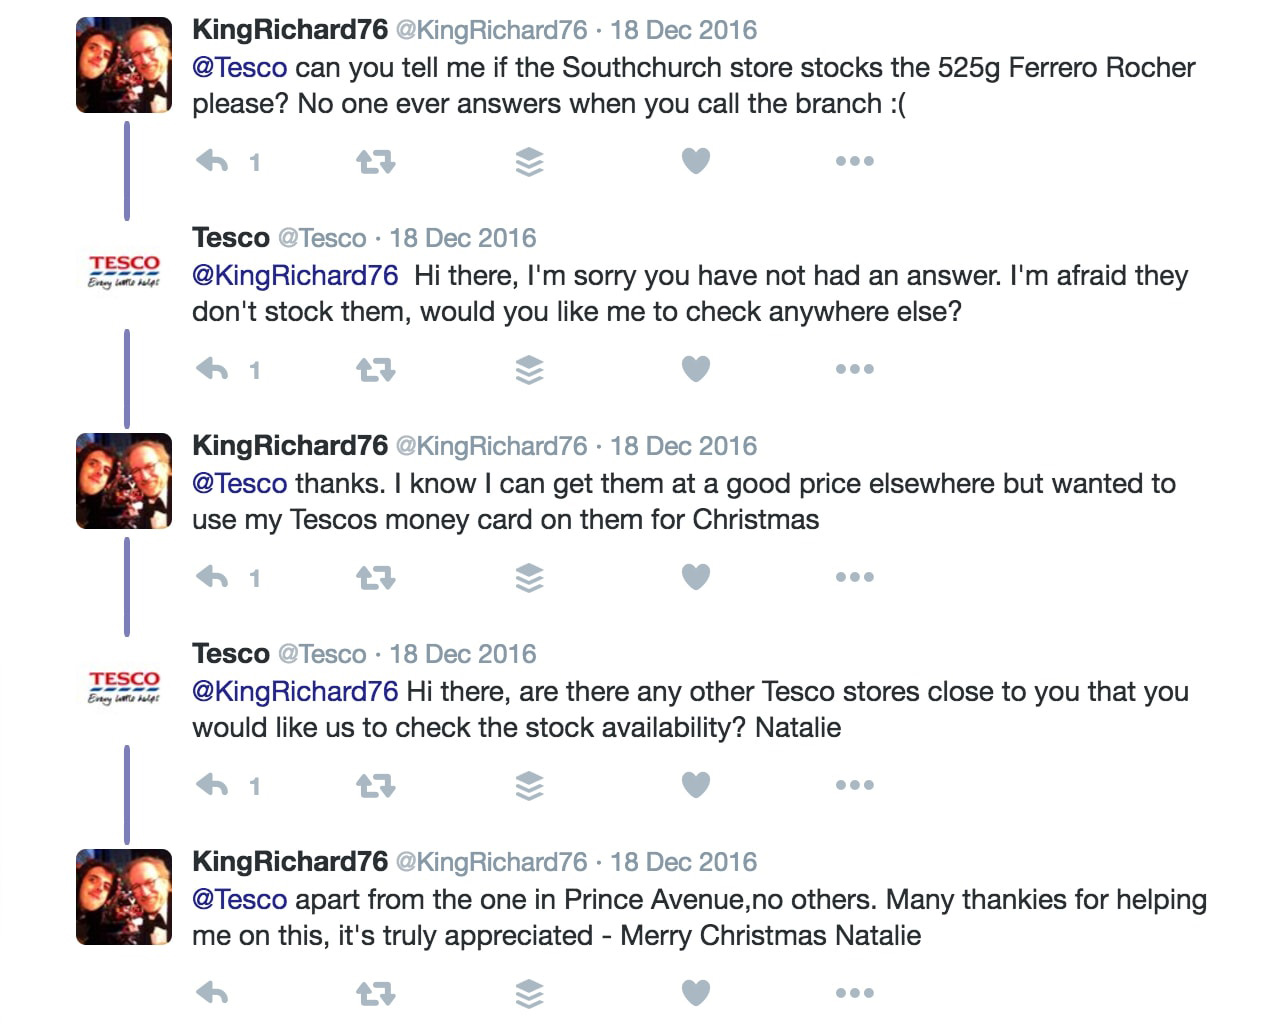 Tesco answering questions on social media